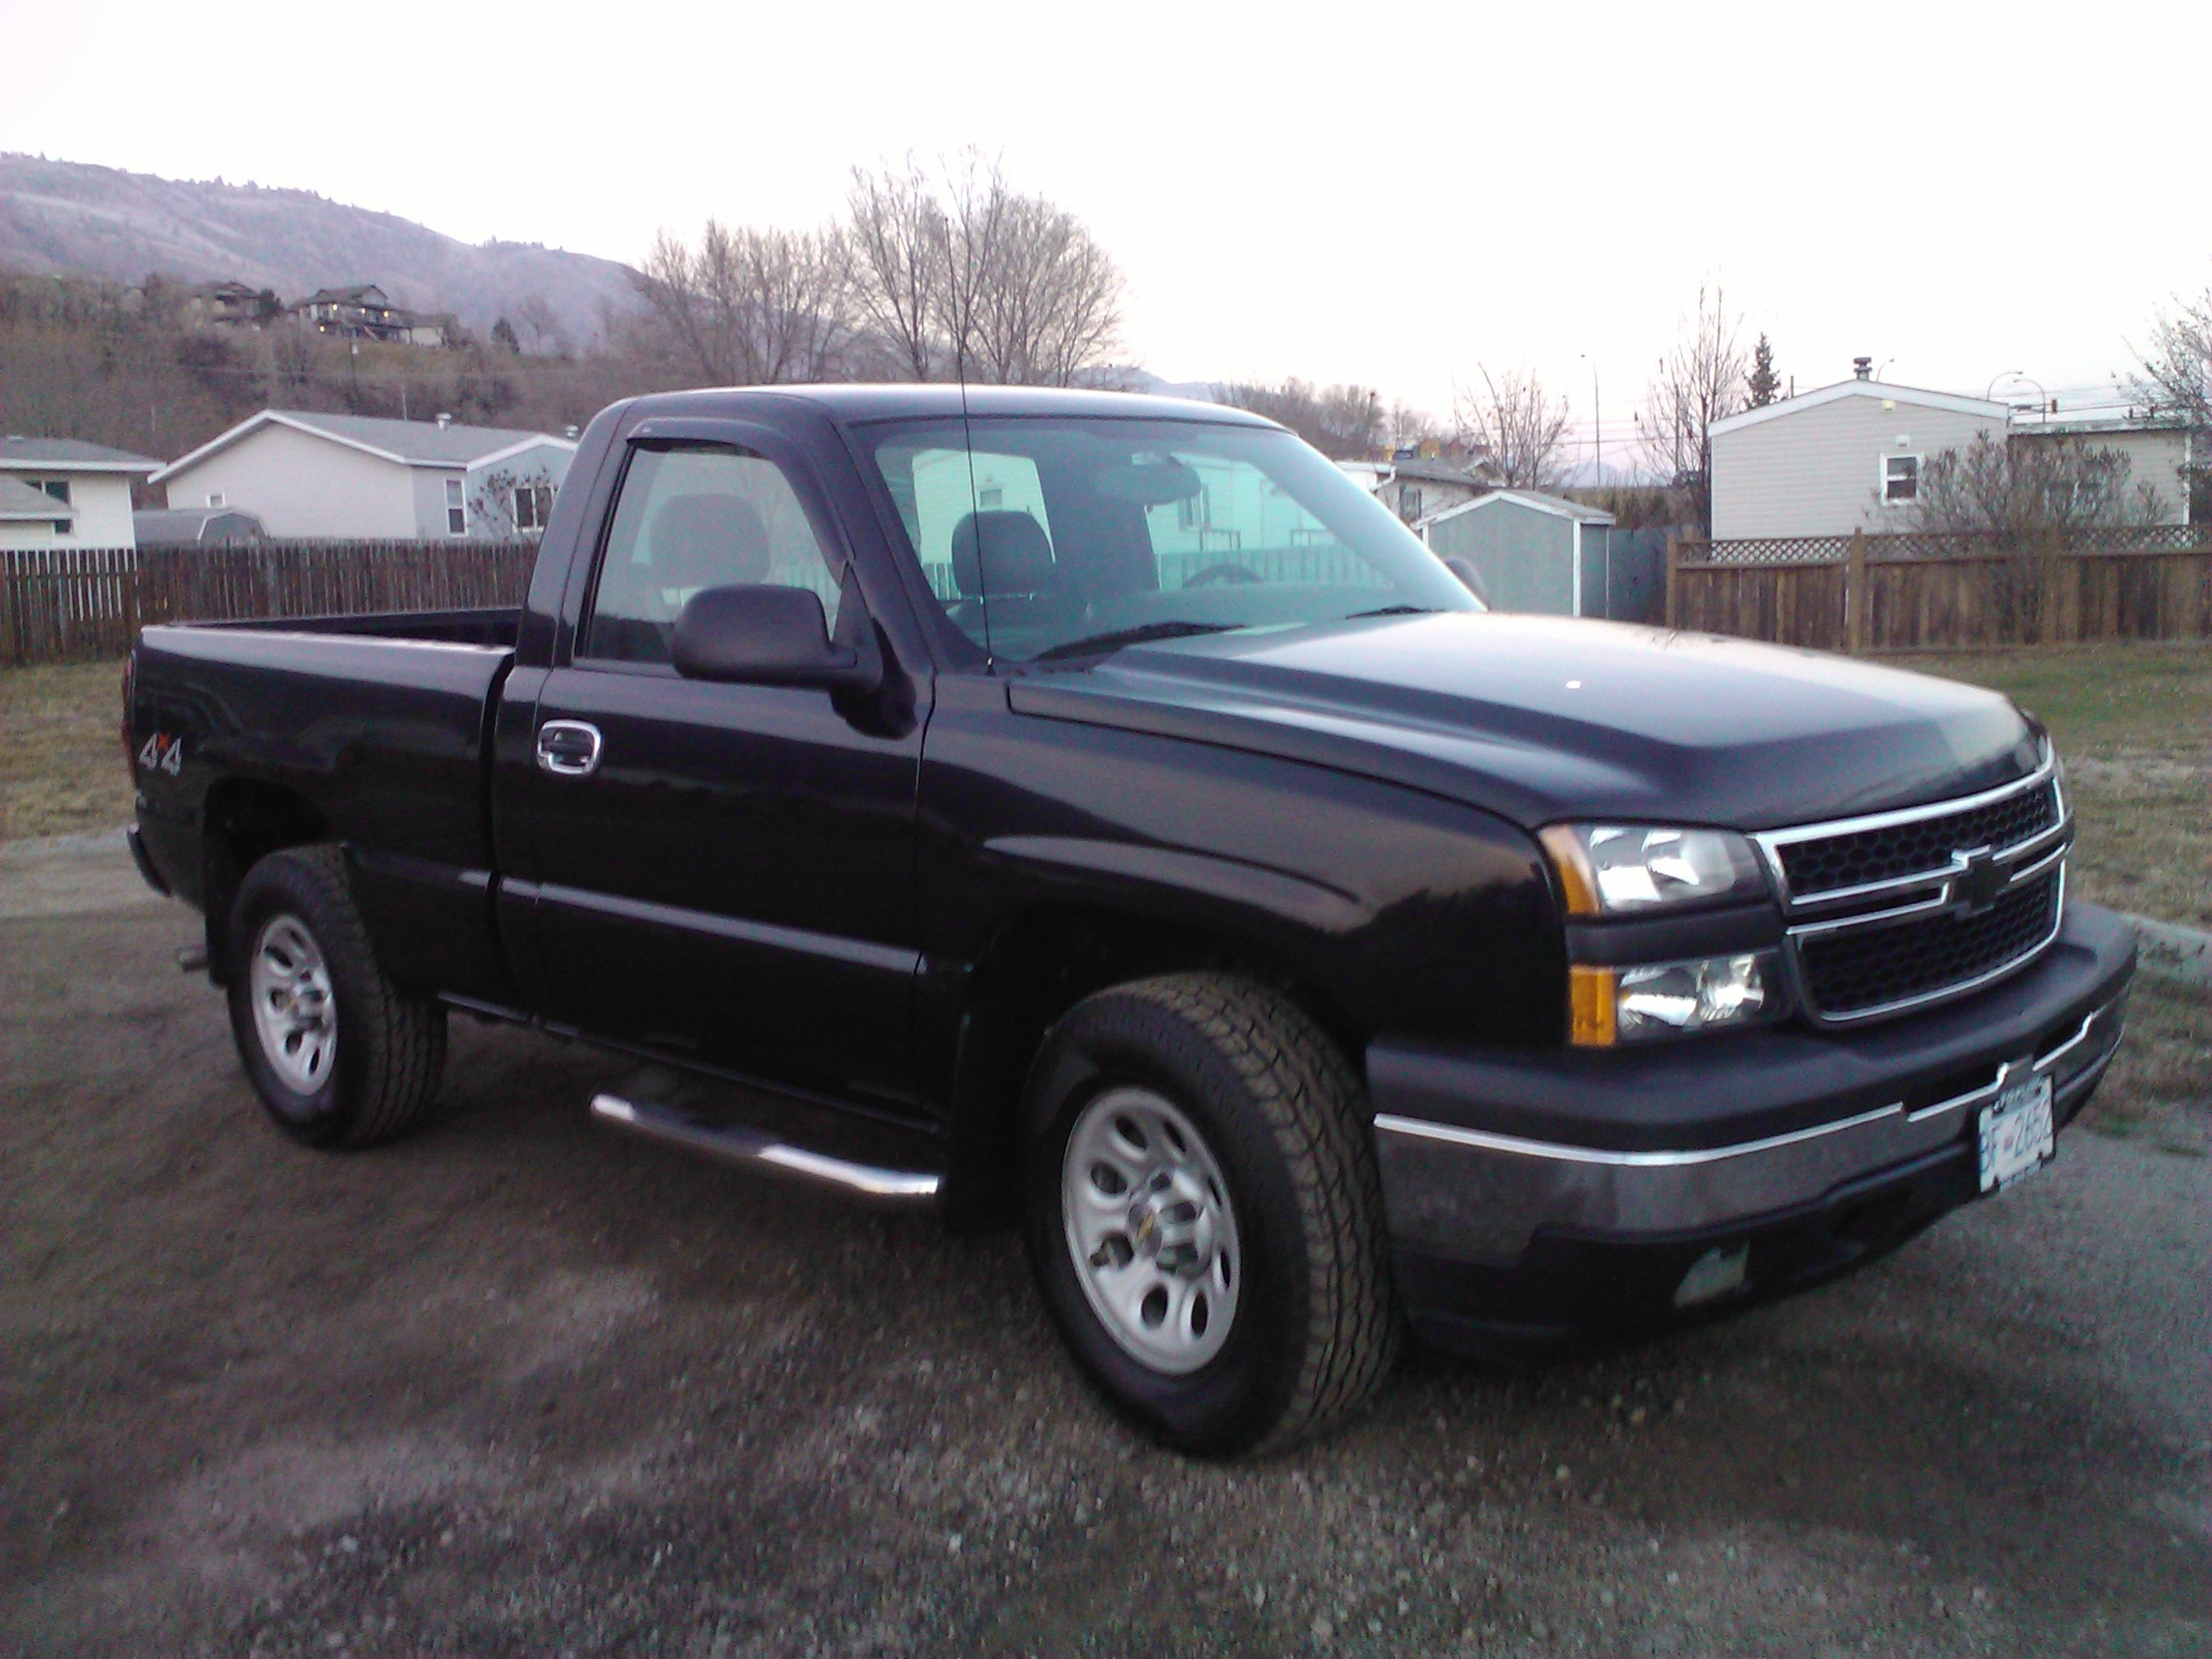 elcool 2007 chevrolet silverado classic 1500 regular cab. Black Bedroom Furniture Sets. Home Design Ideas